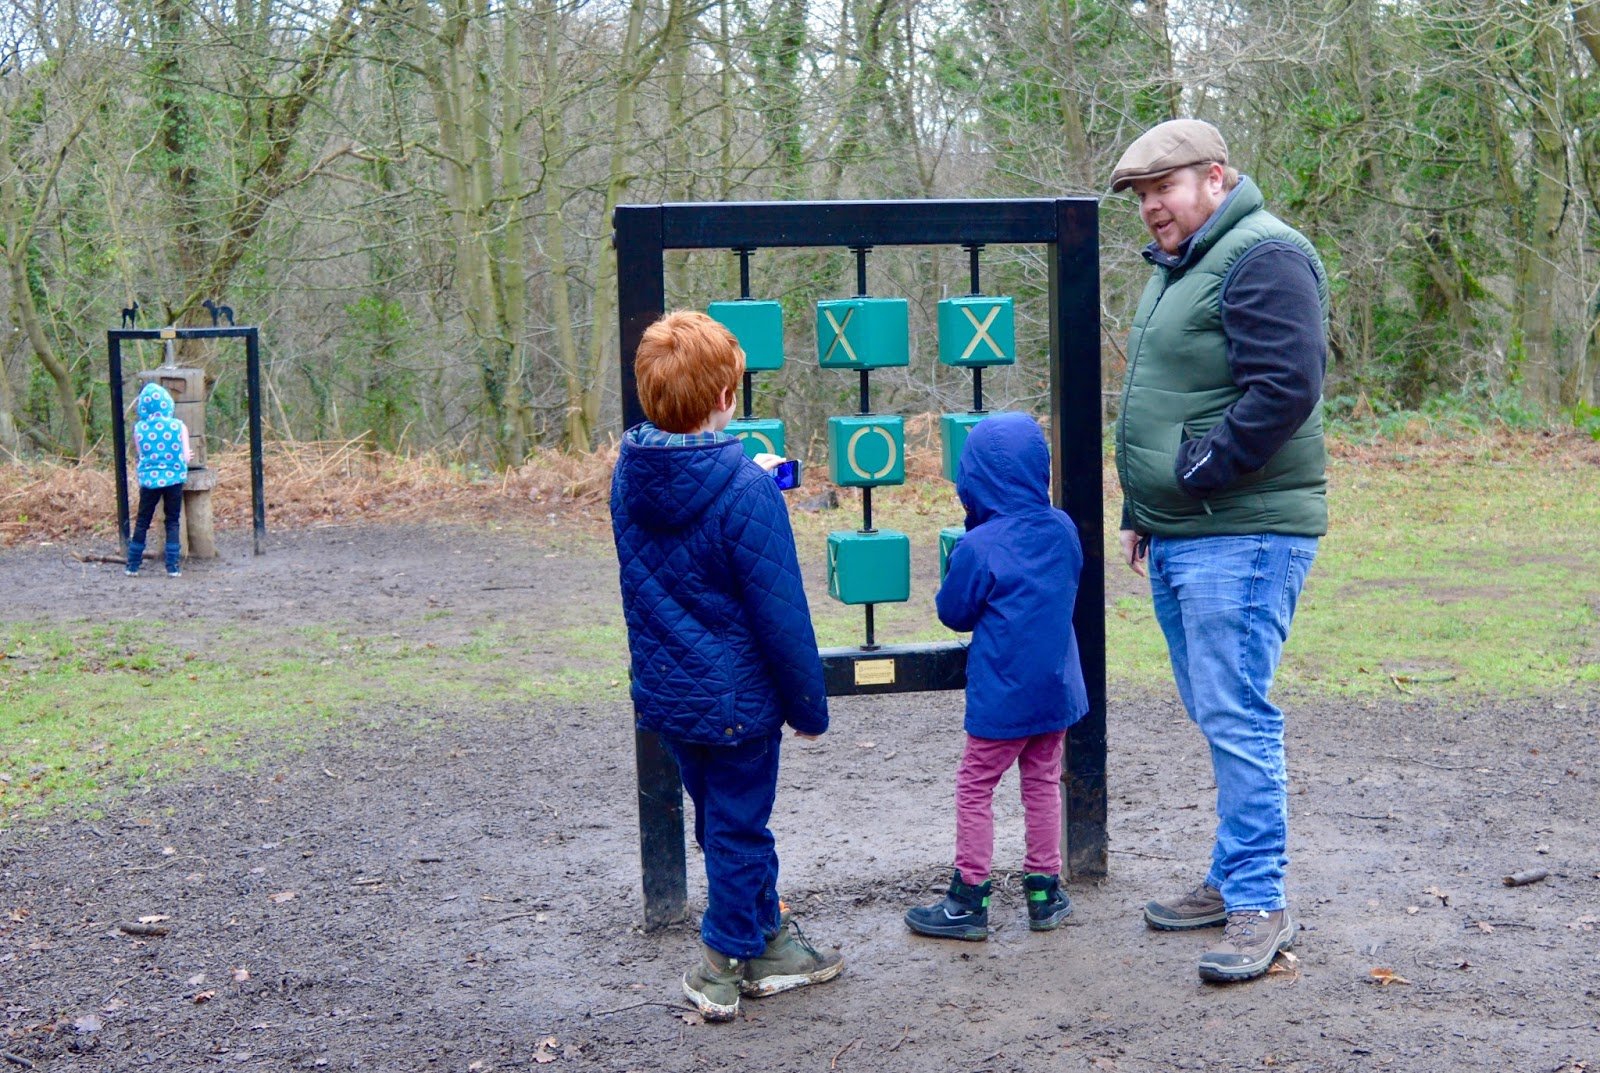 Our Visit to Plessey Woods - A FREE day out in Northumberland. It was very muddy and the perfect chance for Harry to put his GORE-TEX shoes through their paces - playing noughts and crosses